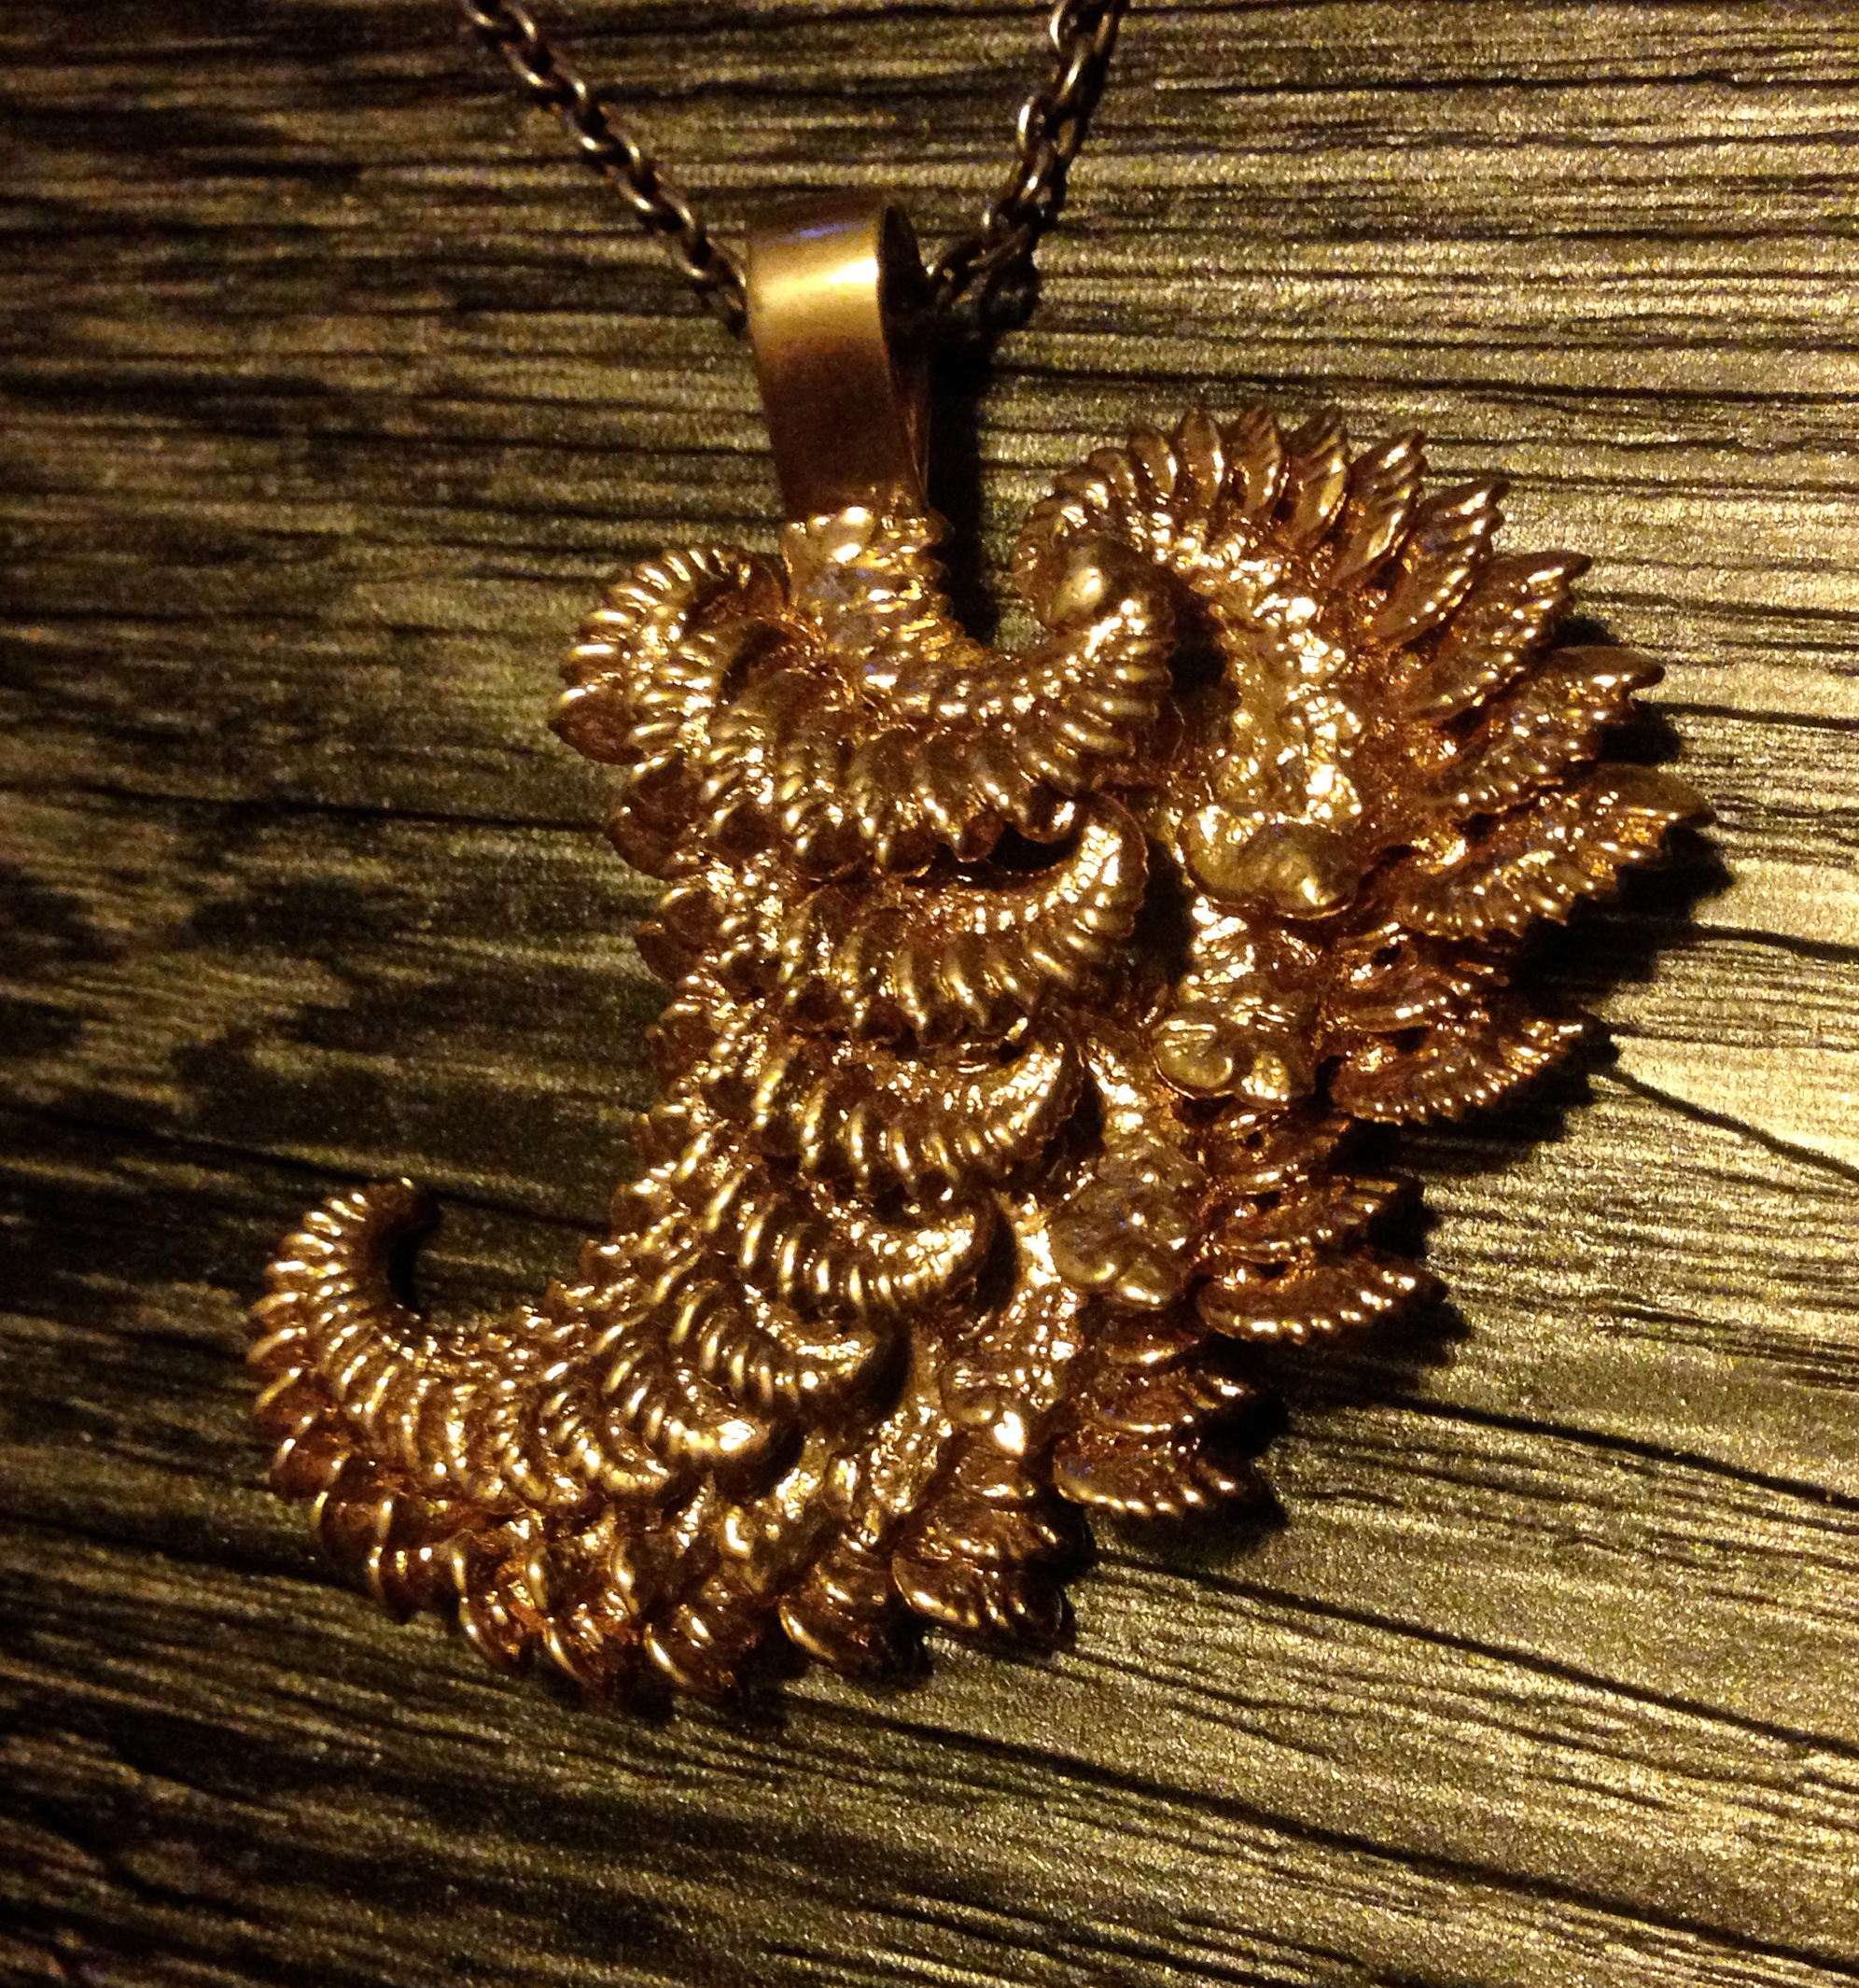 Image of Transcendent Wing pendant 3D printed by Shapetizer designed by unellenu